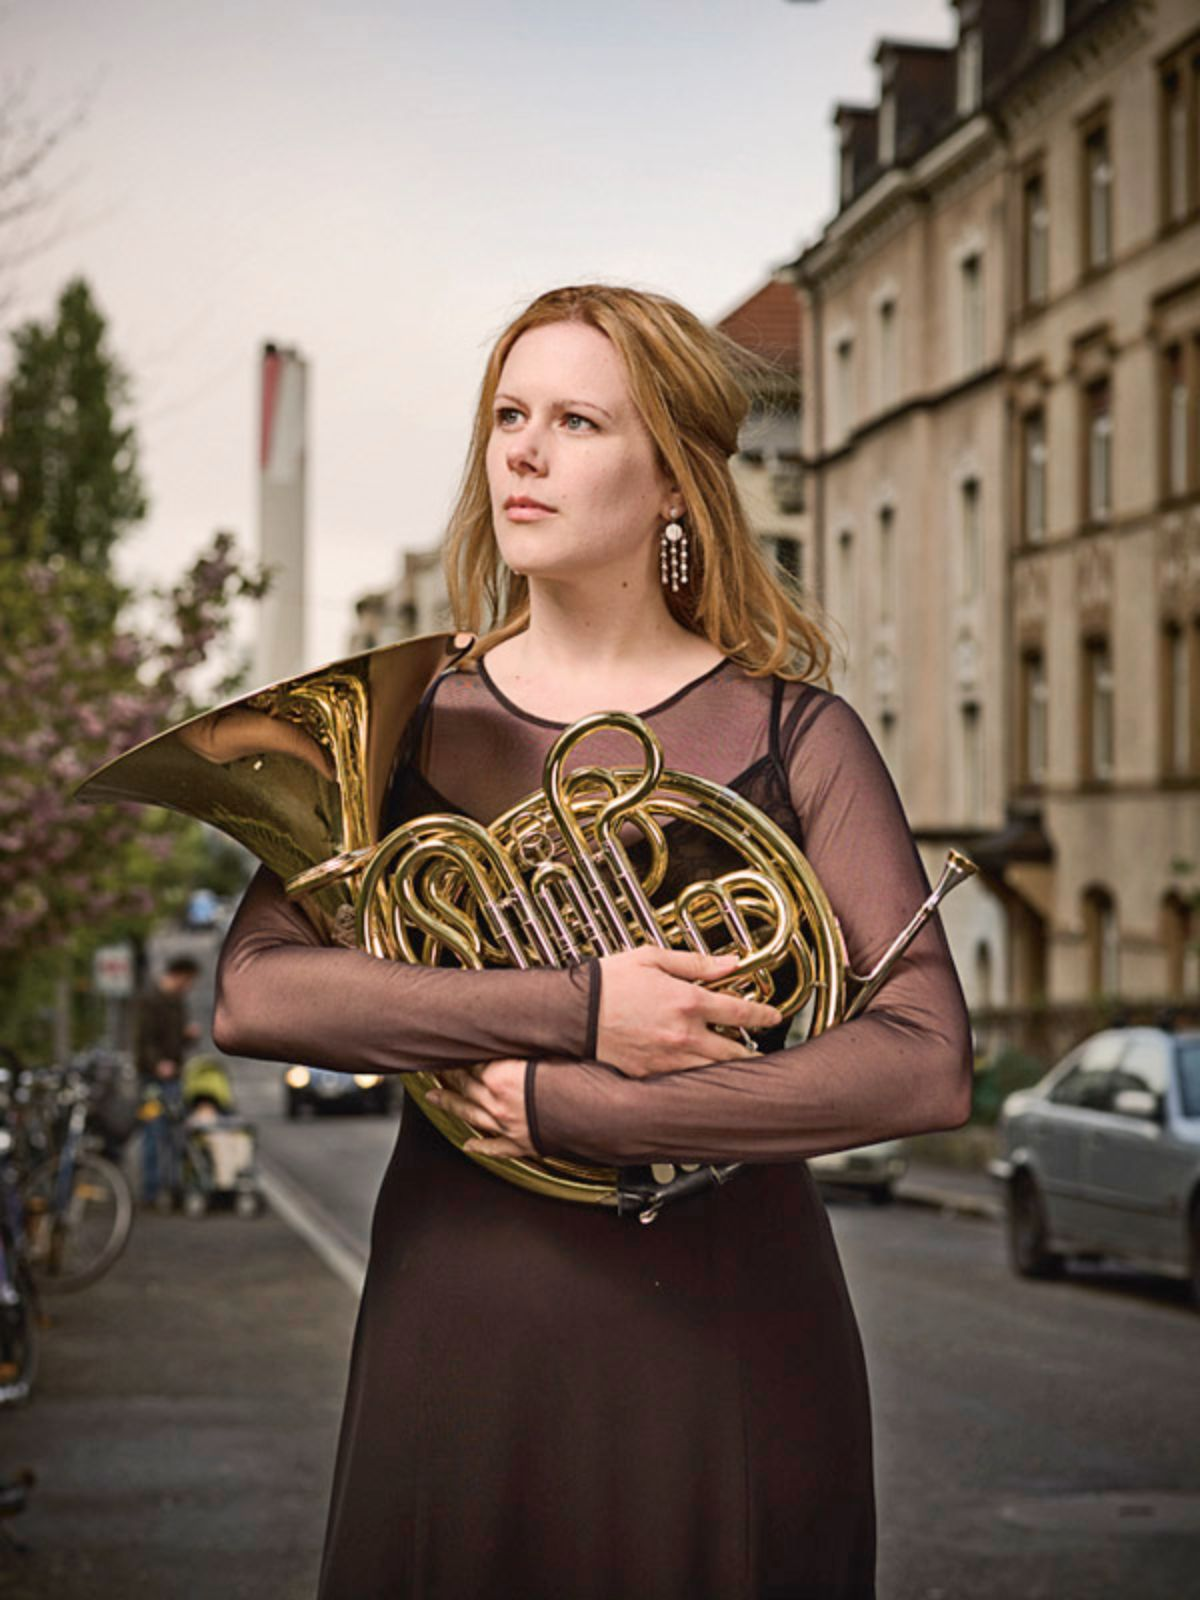 Megan McBride, french horn